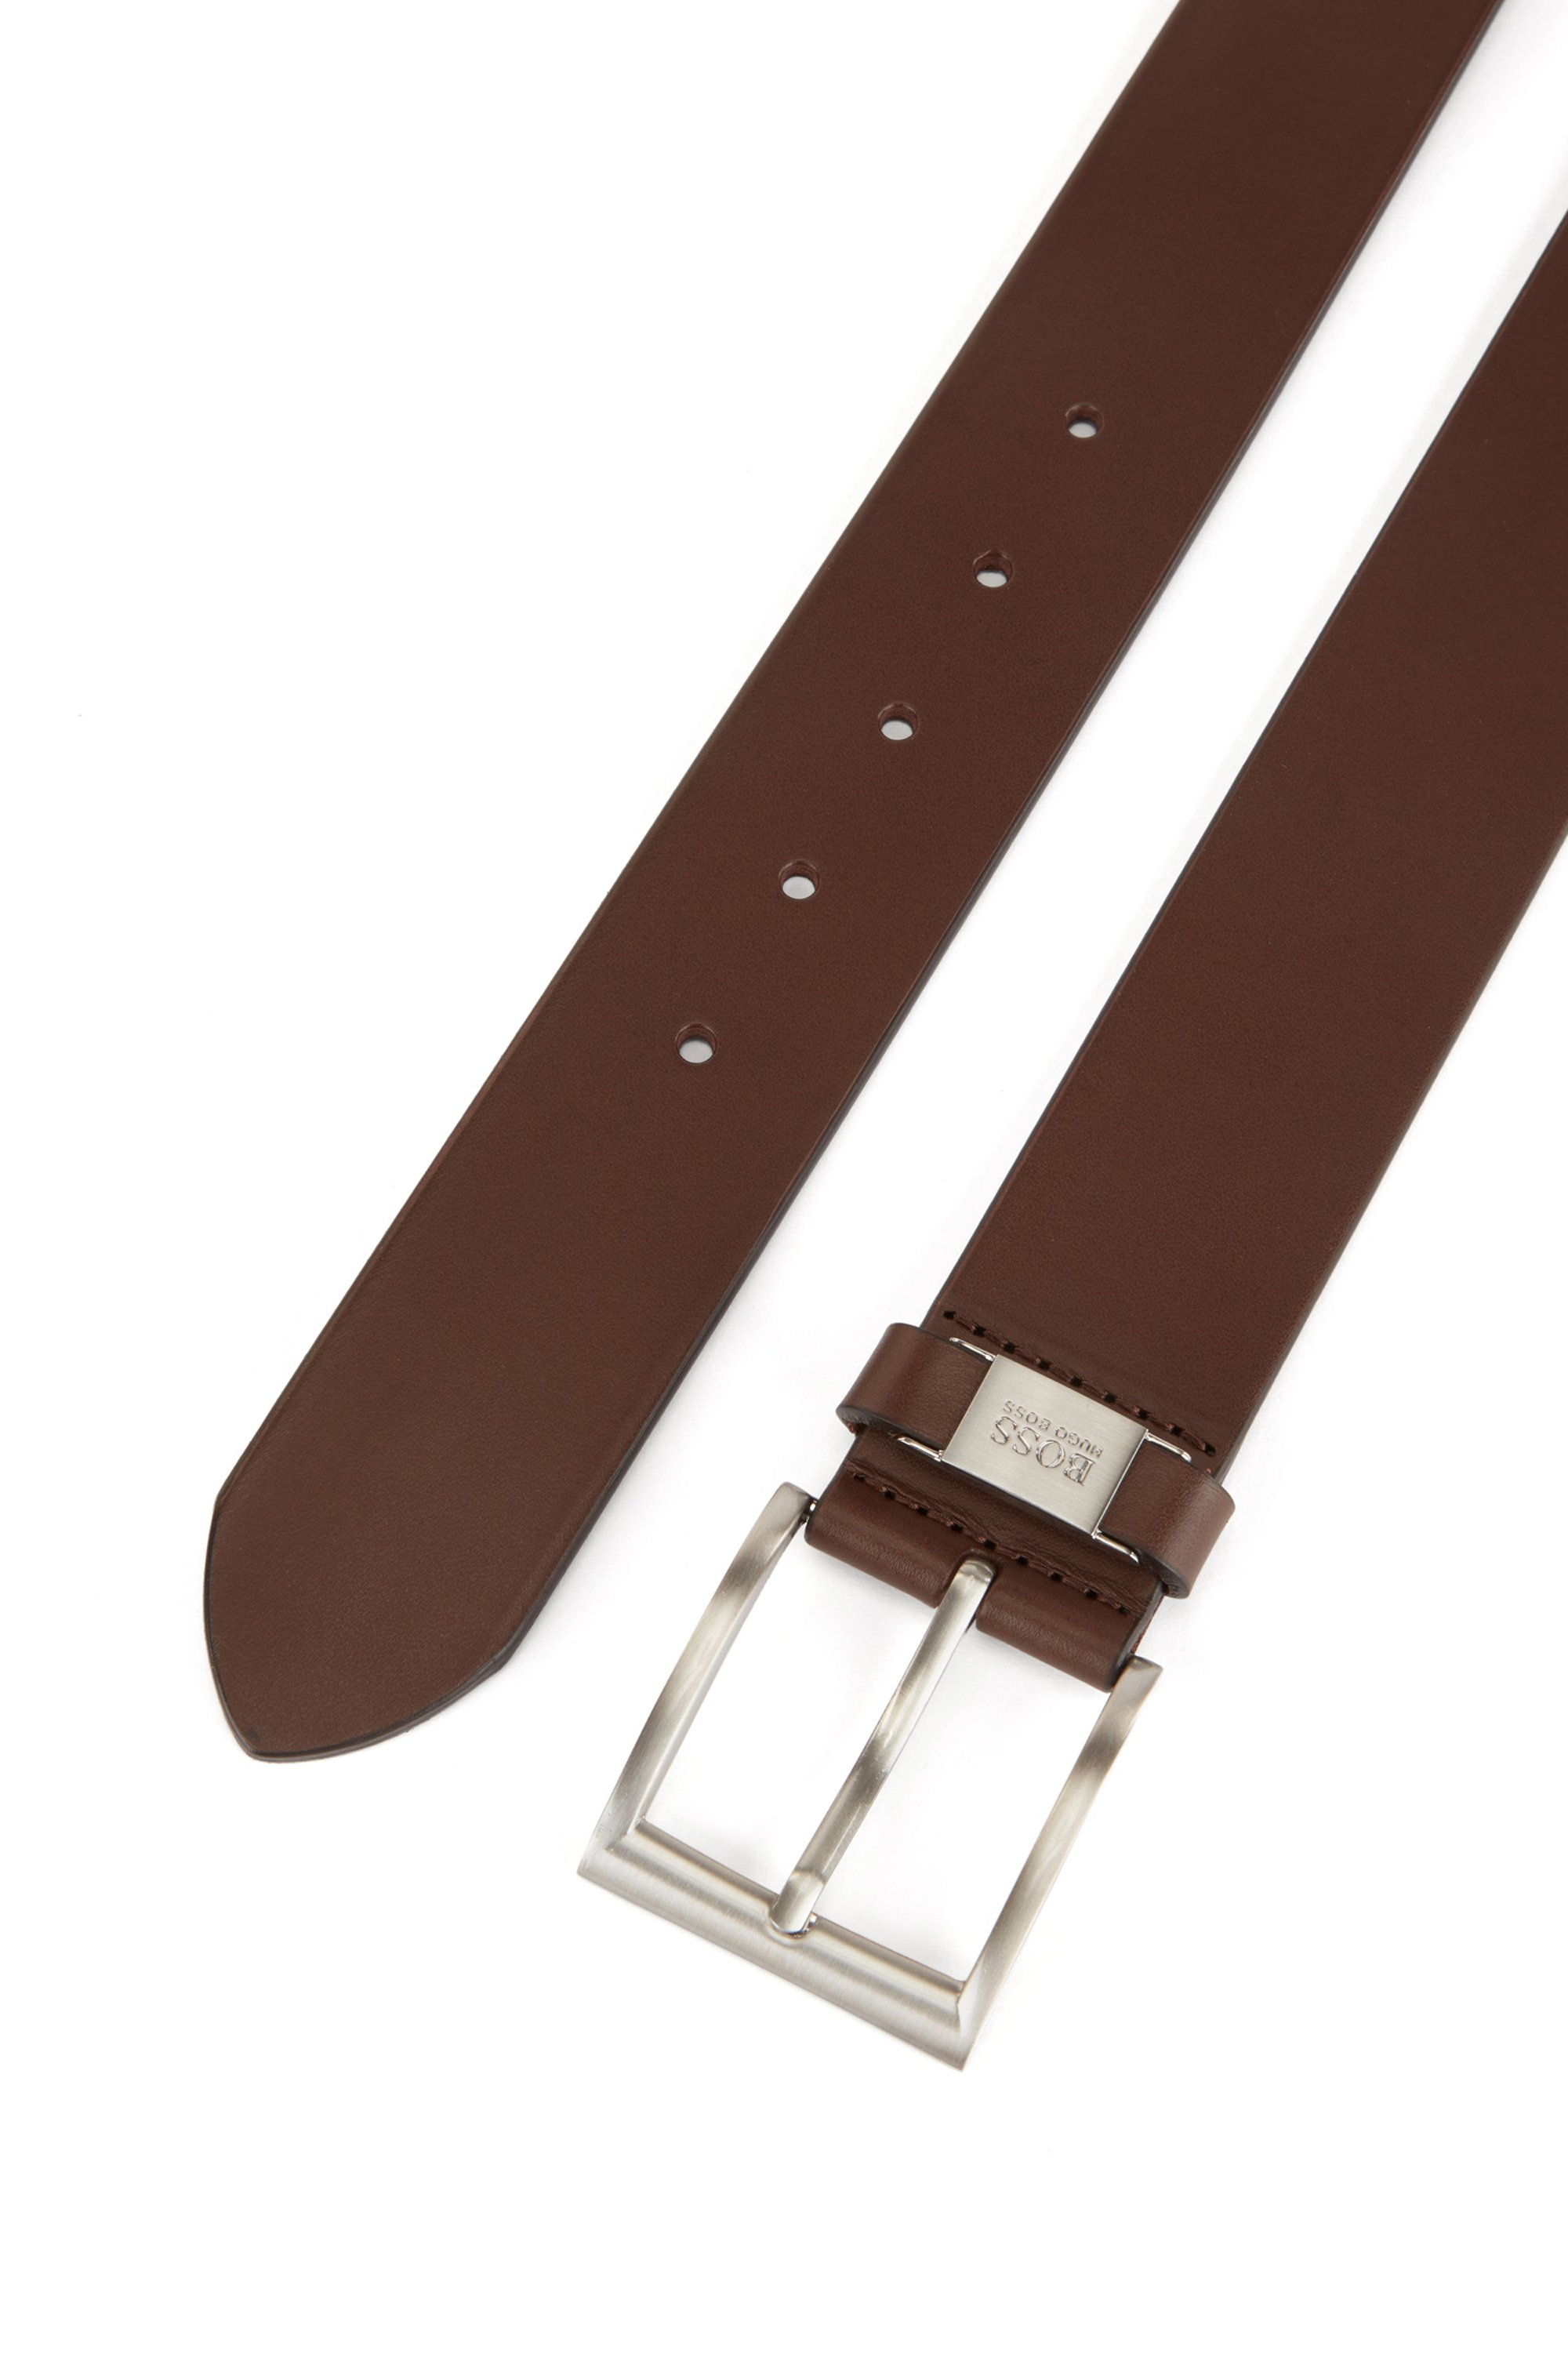 Leather belt with branded hardware keeper